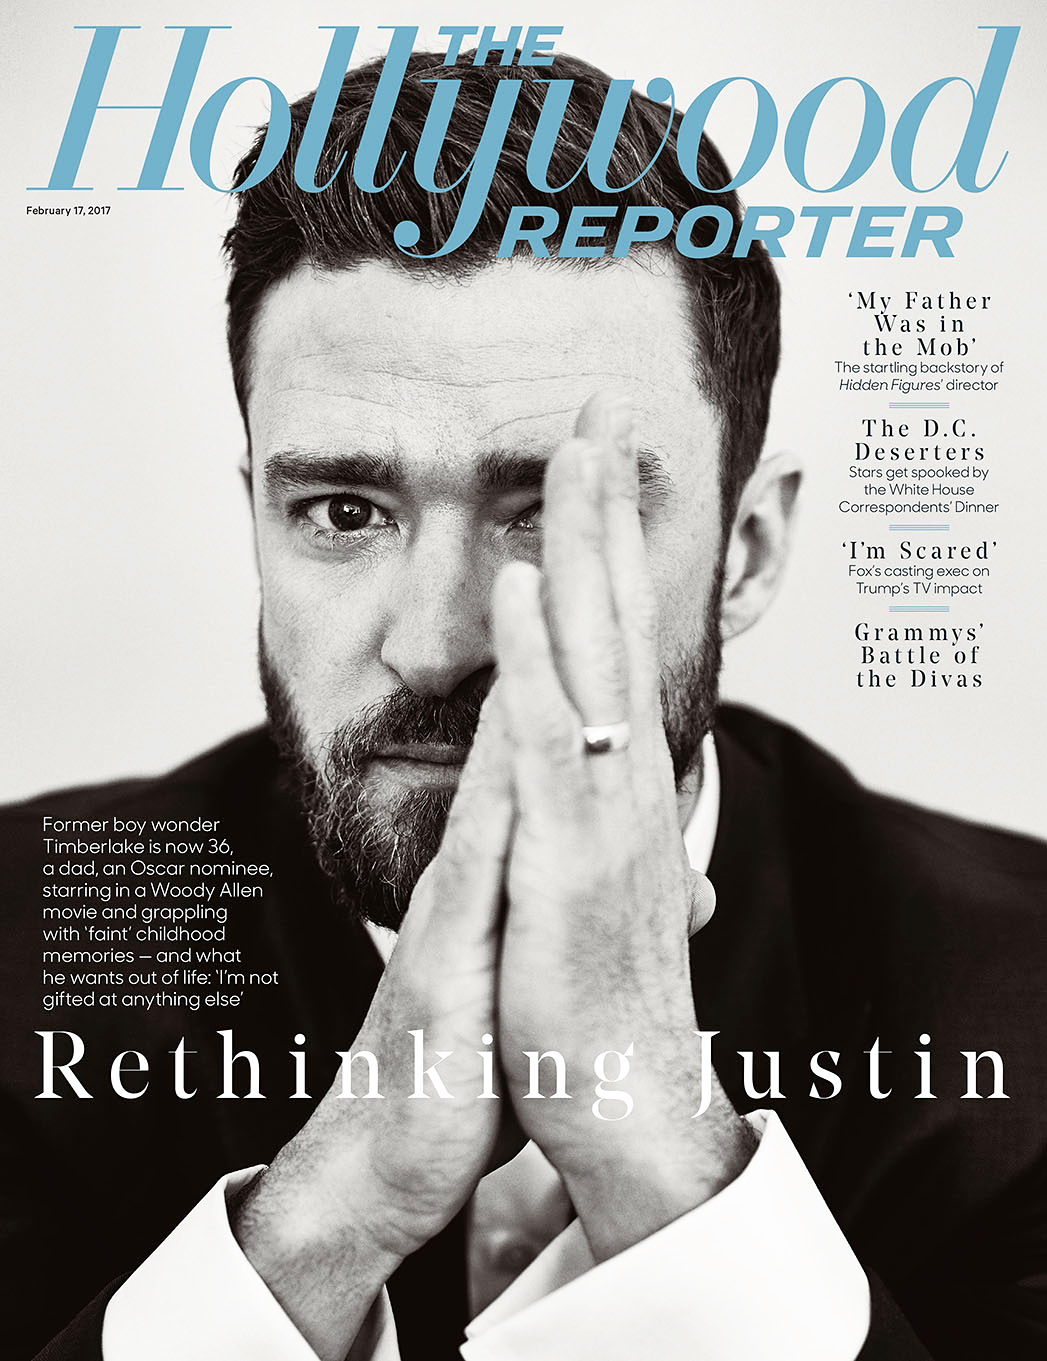 Justin Timberlake The Hollywood Reporter cover